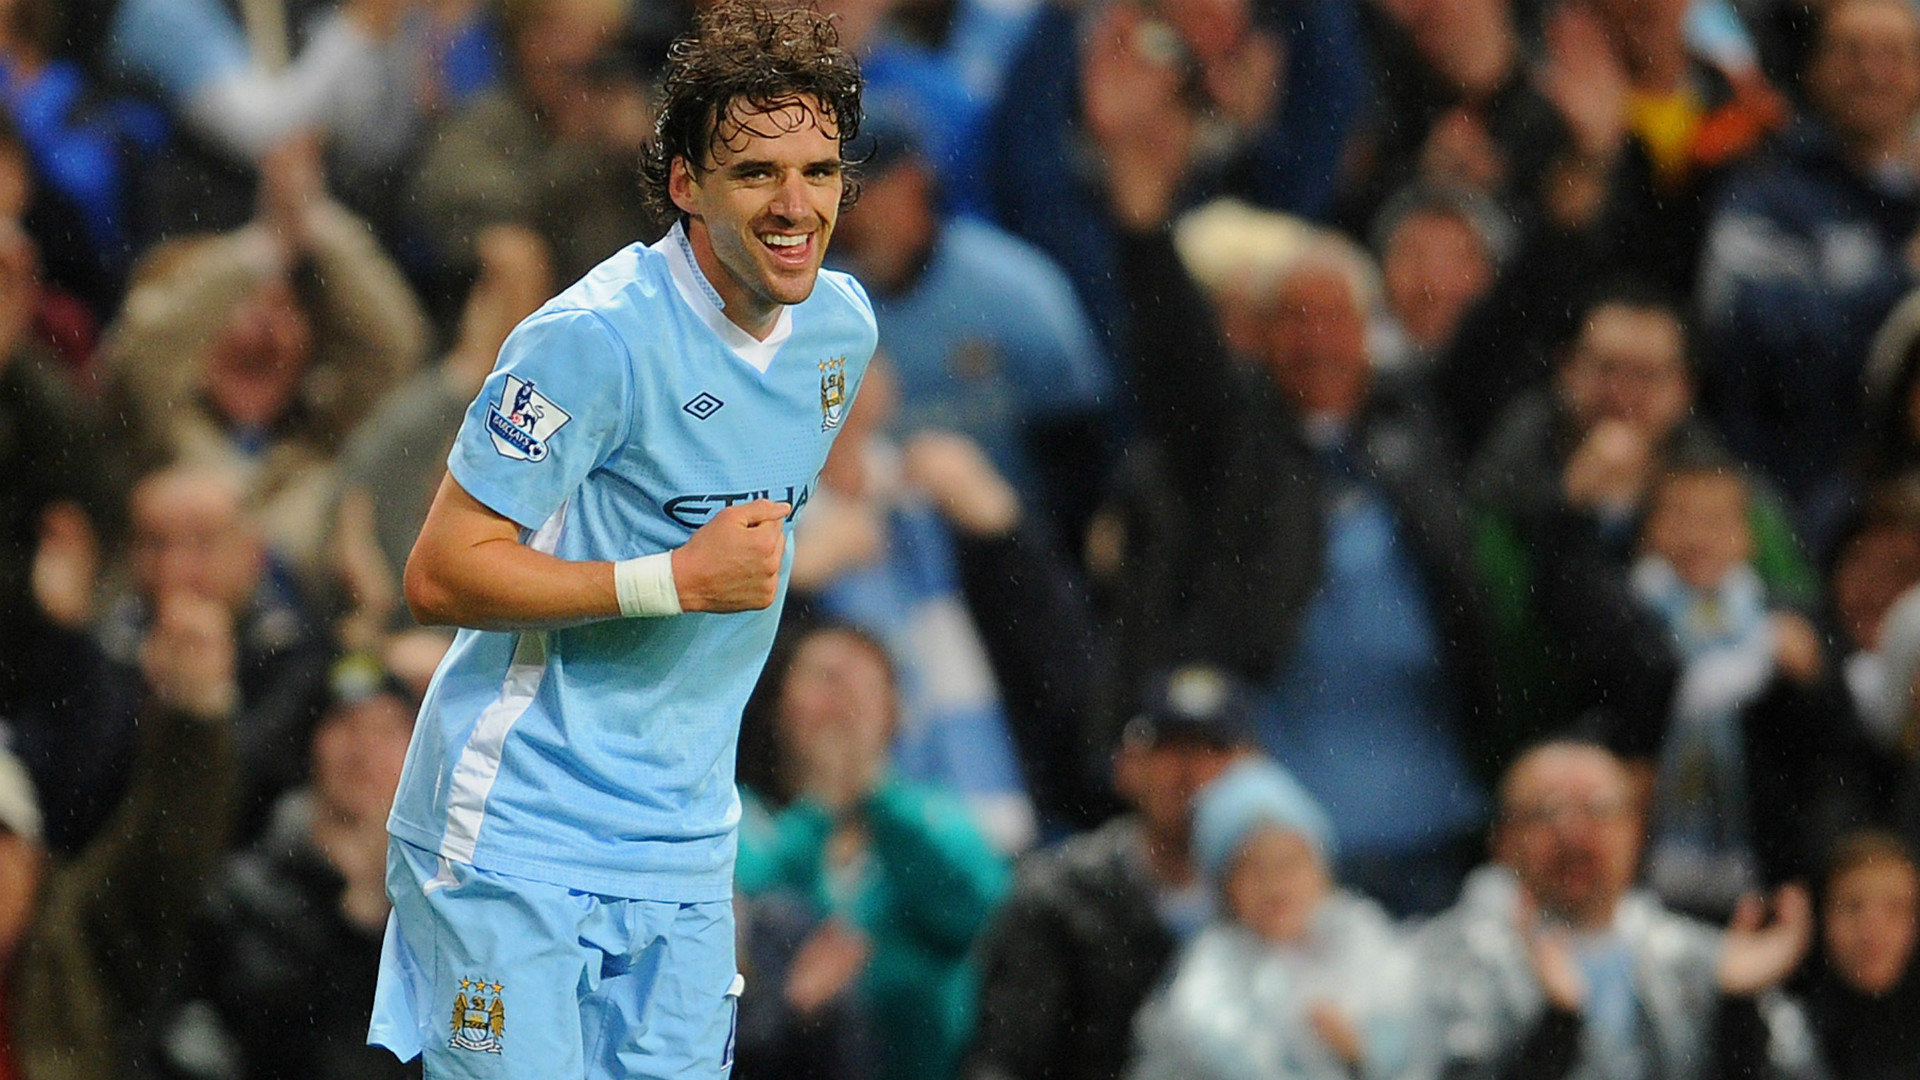 Owen Hargreaves | Manchester City